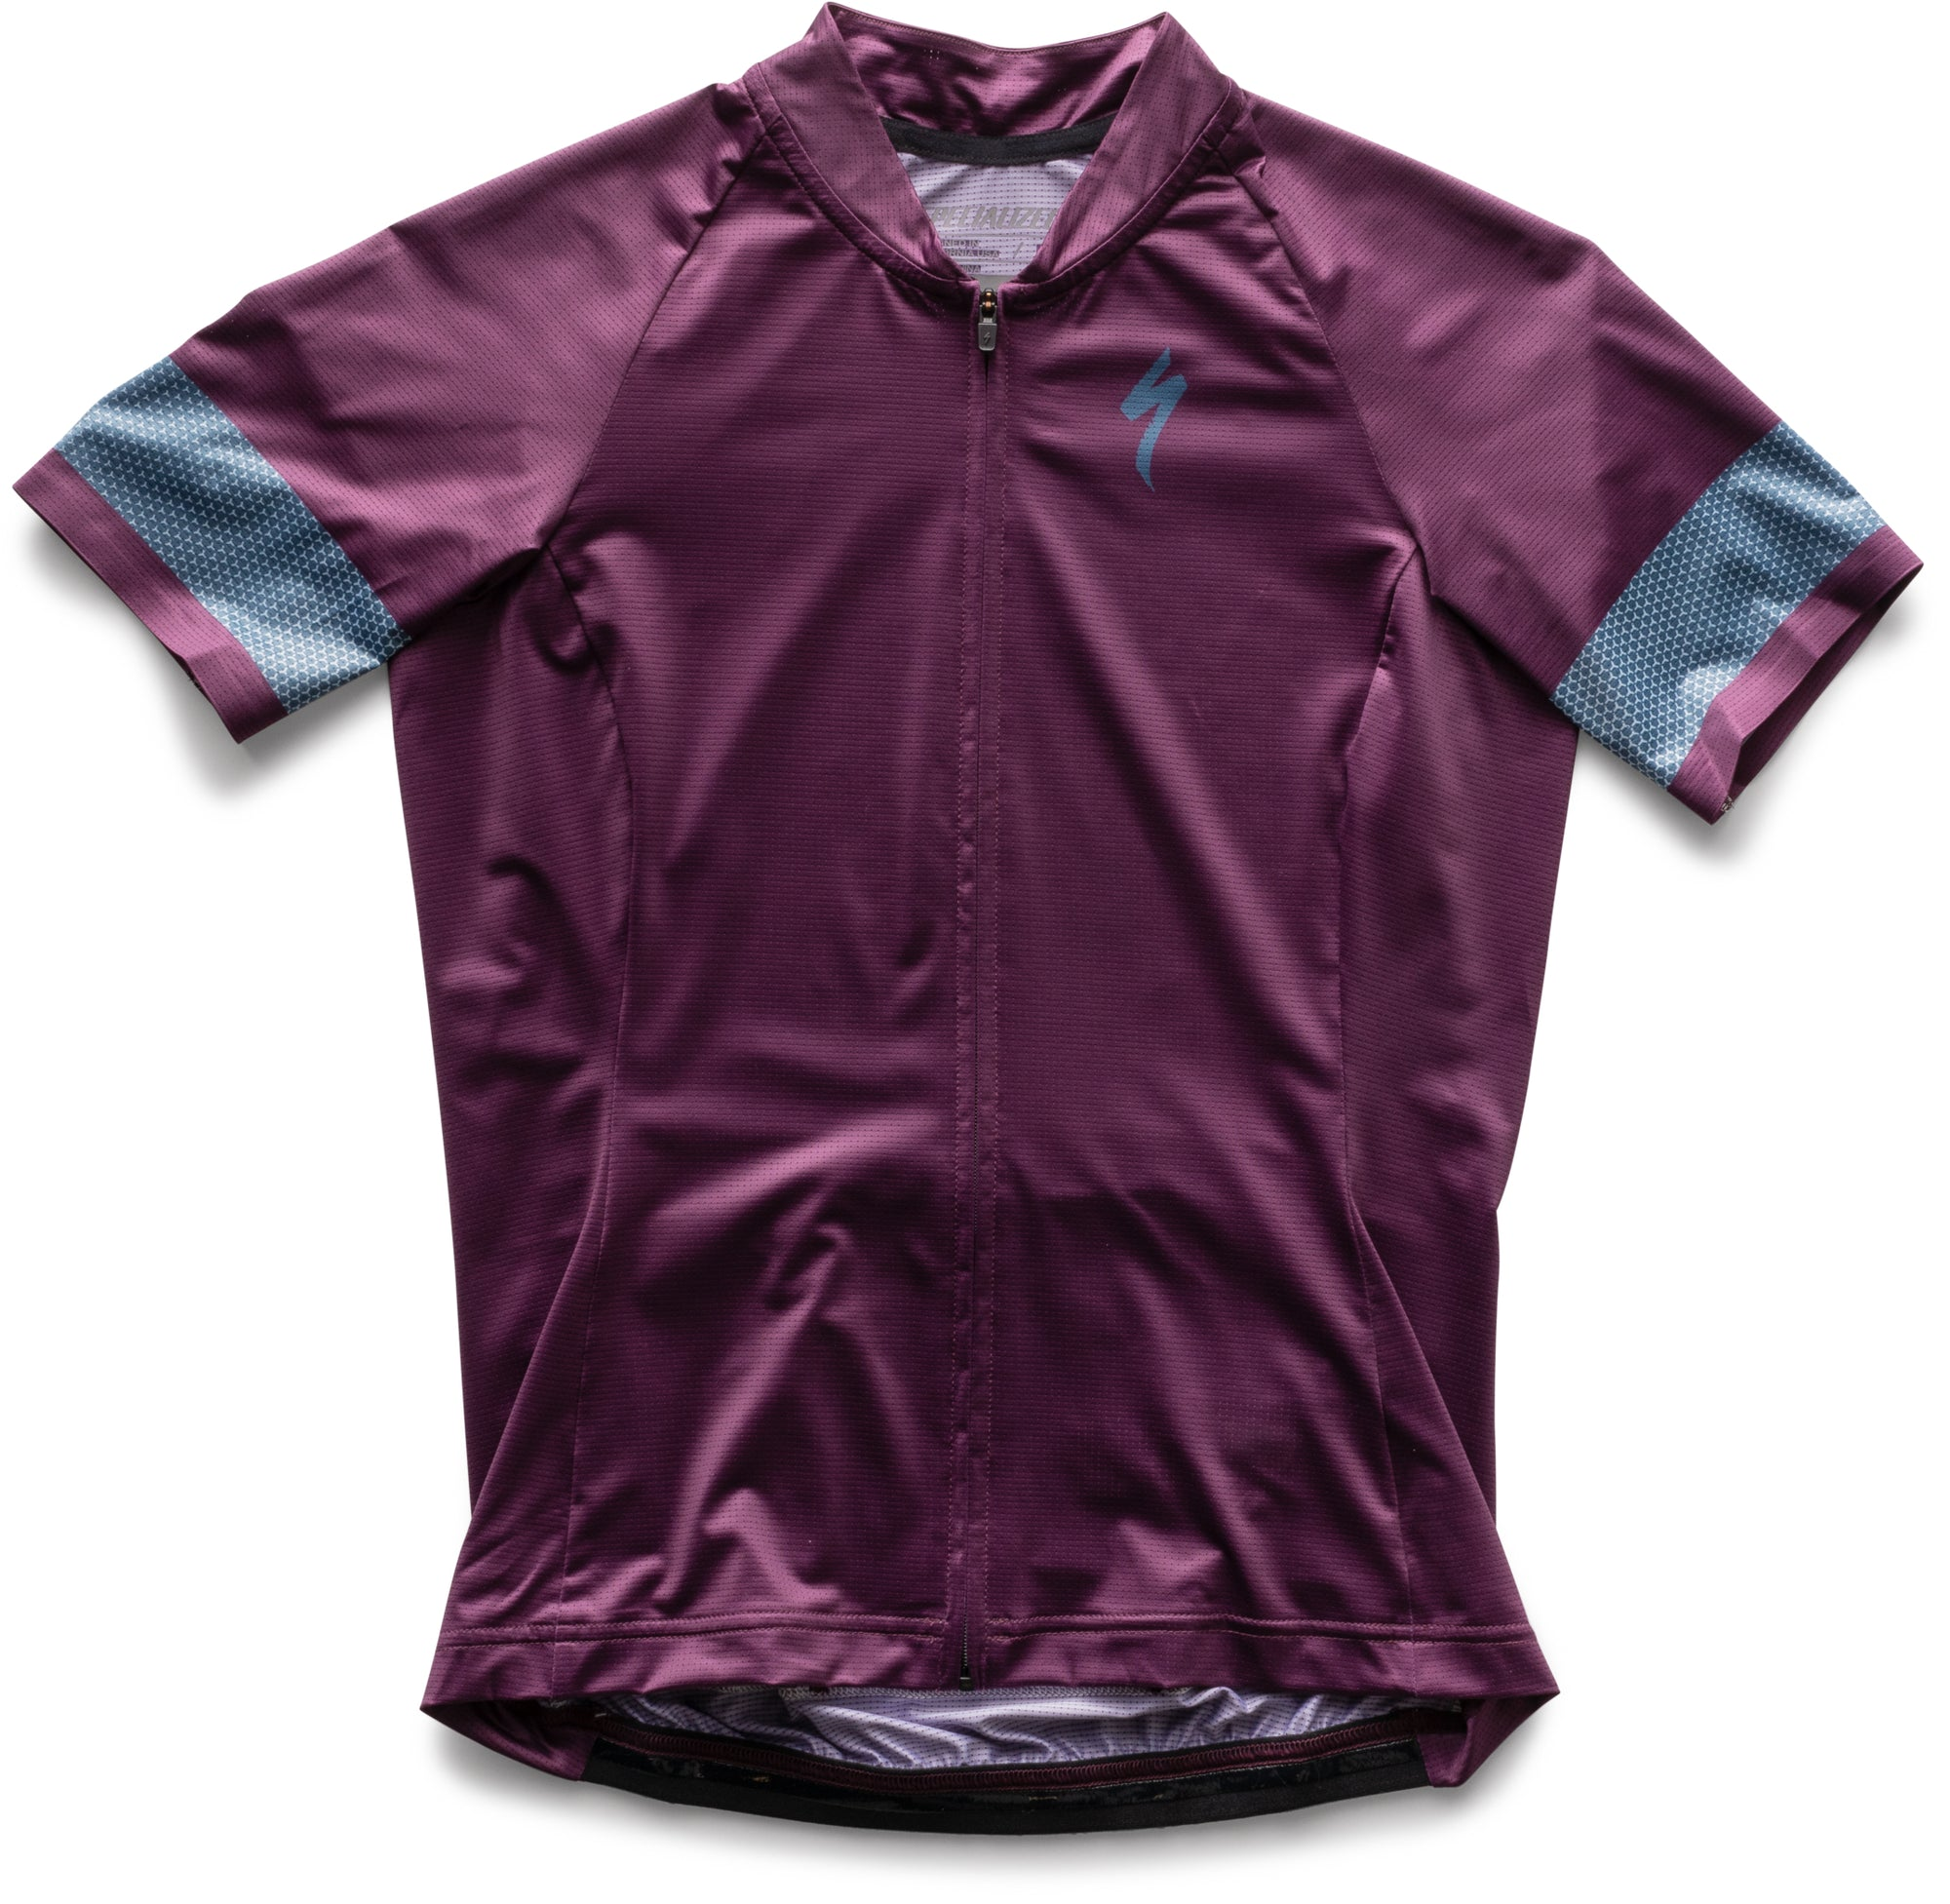 Women's SL Air Jersey